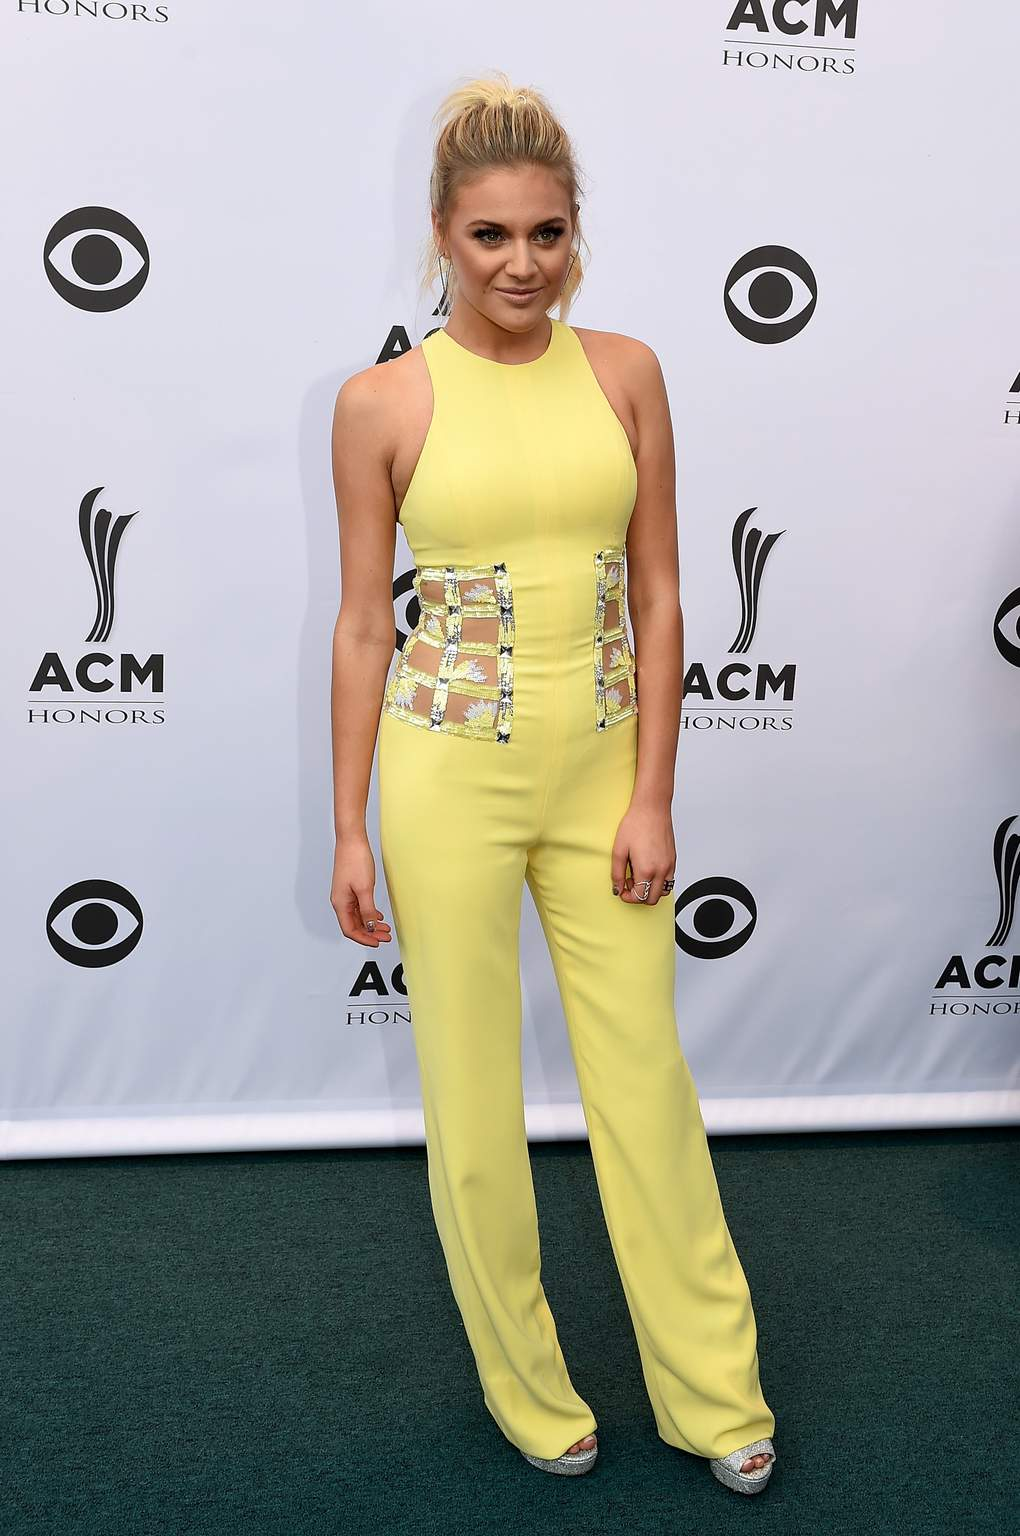 HQ Photos of Kelsea Ballerini – 10th Annual ACM Honors